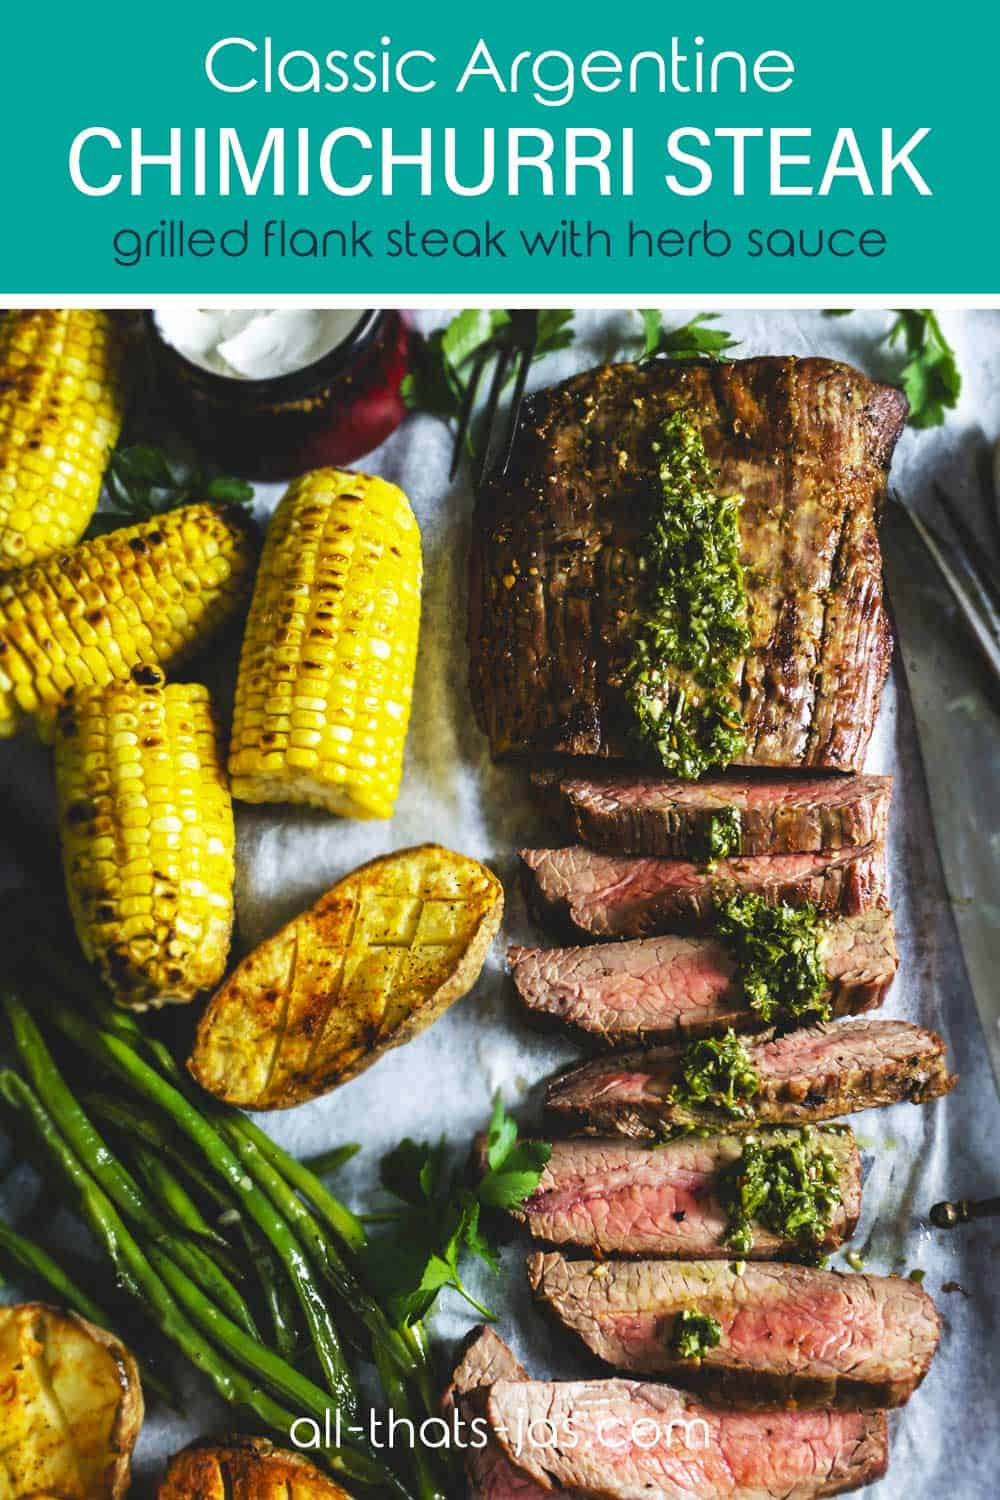 Steak sliced on a sheet pan with veggies and text overlay